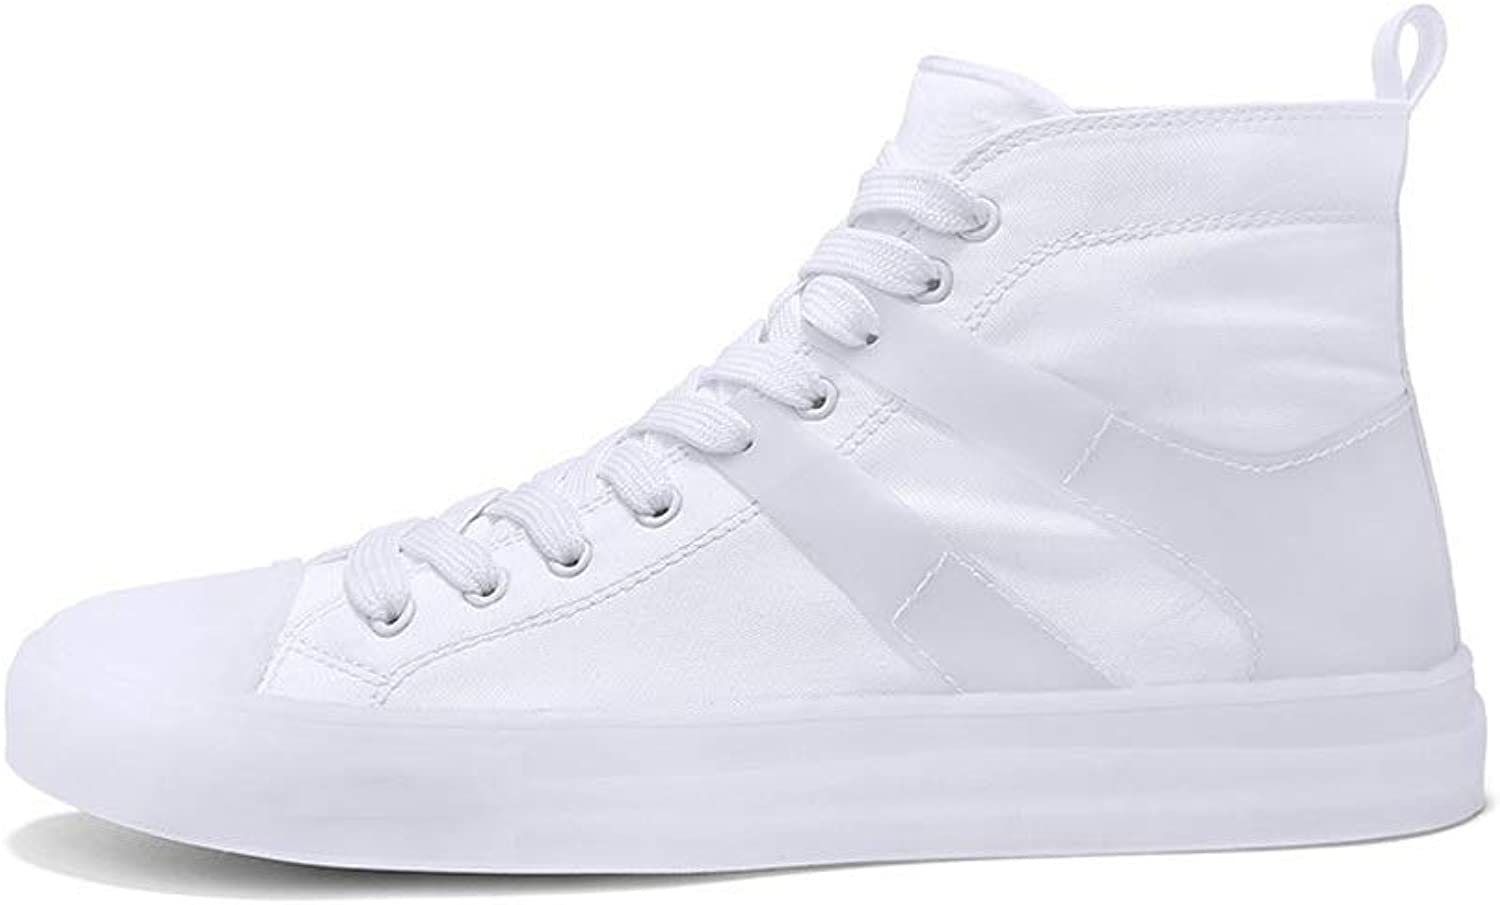 Ailj Canvas shoes, Male Spring Single shoes Canvas Upper High-top shoes Casual shoes (White)